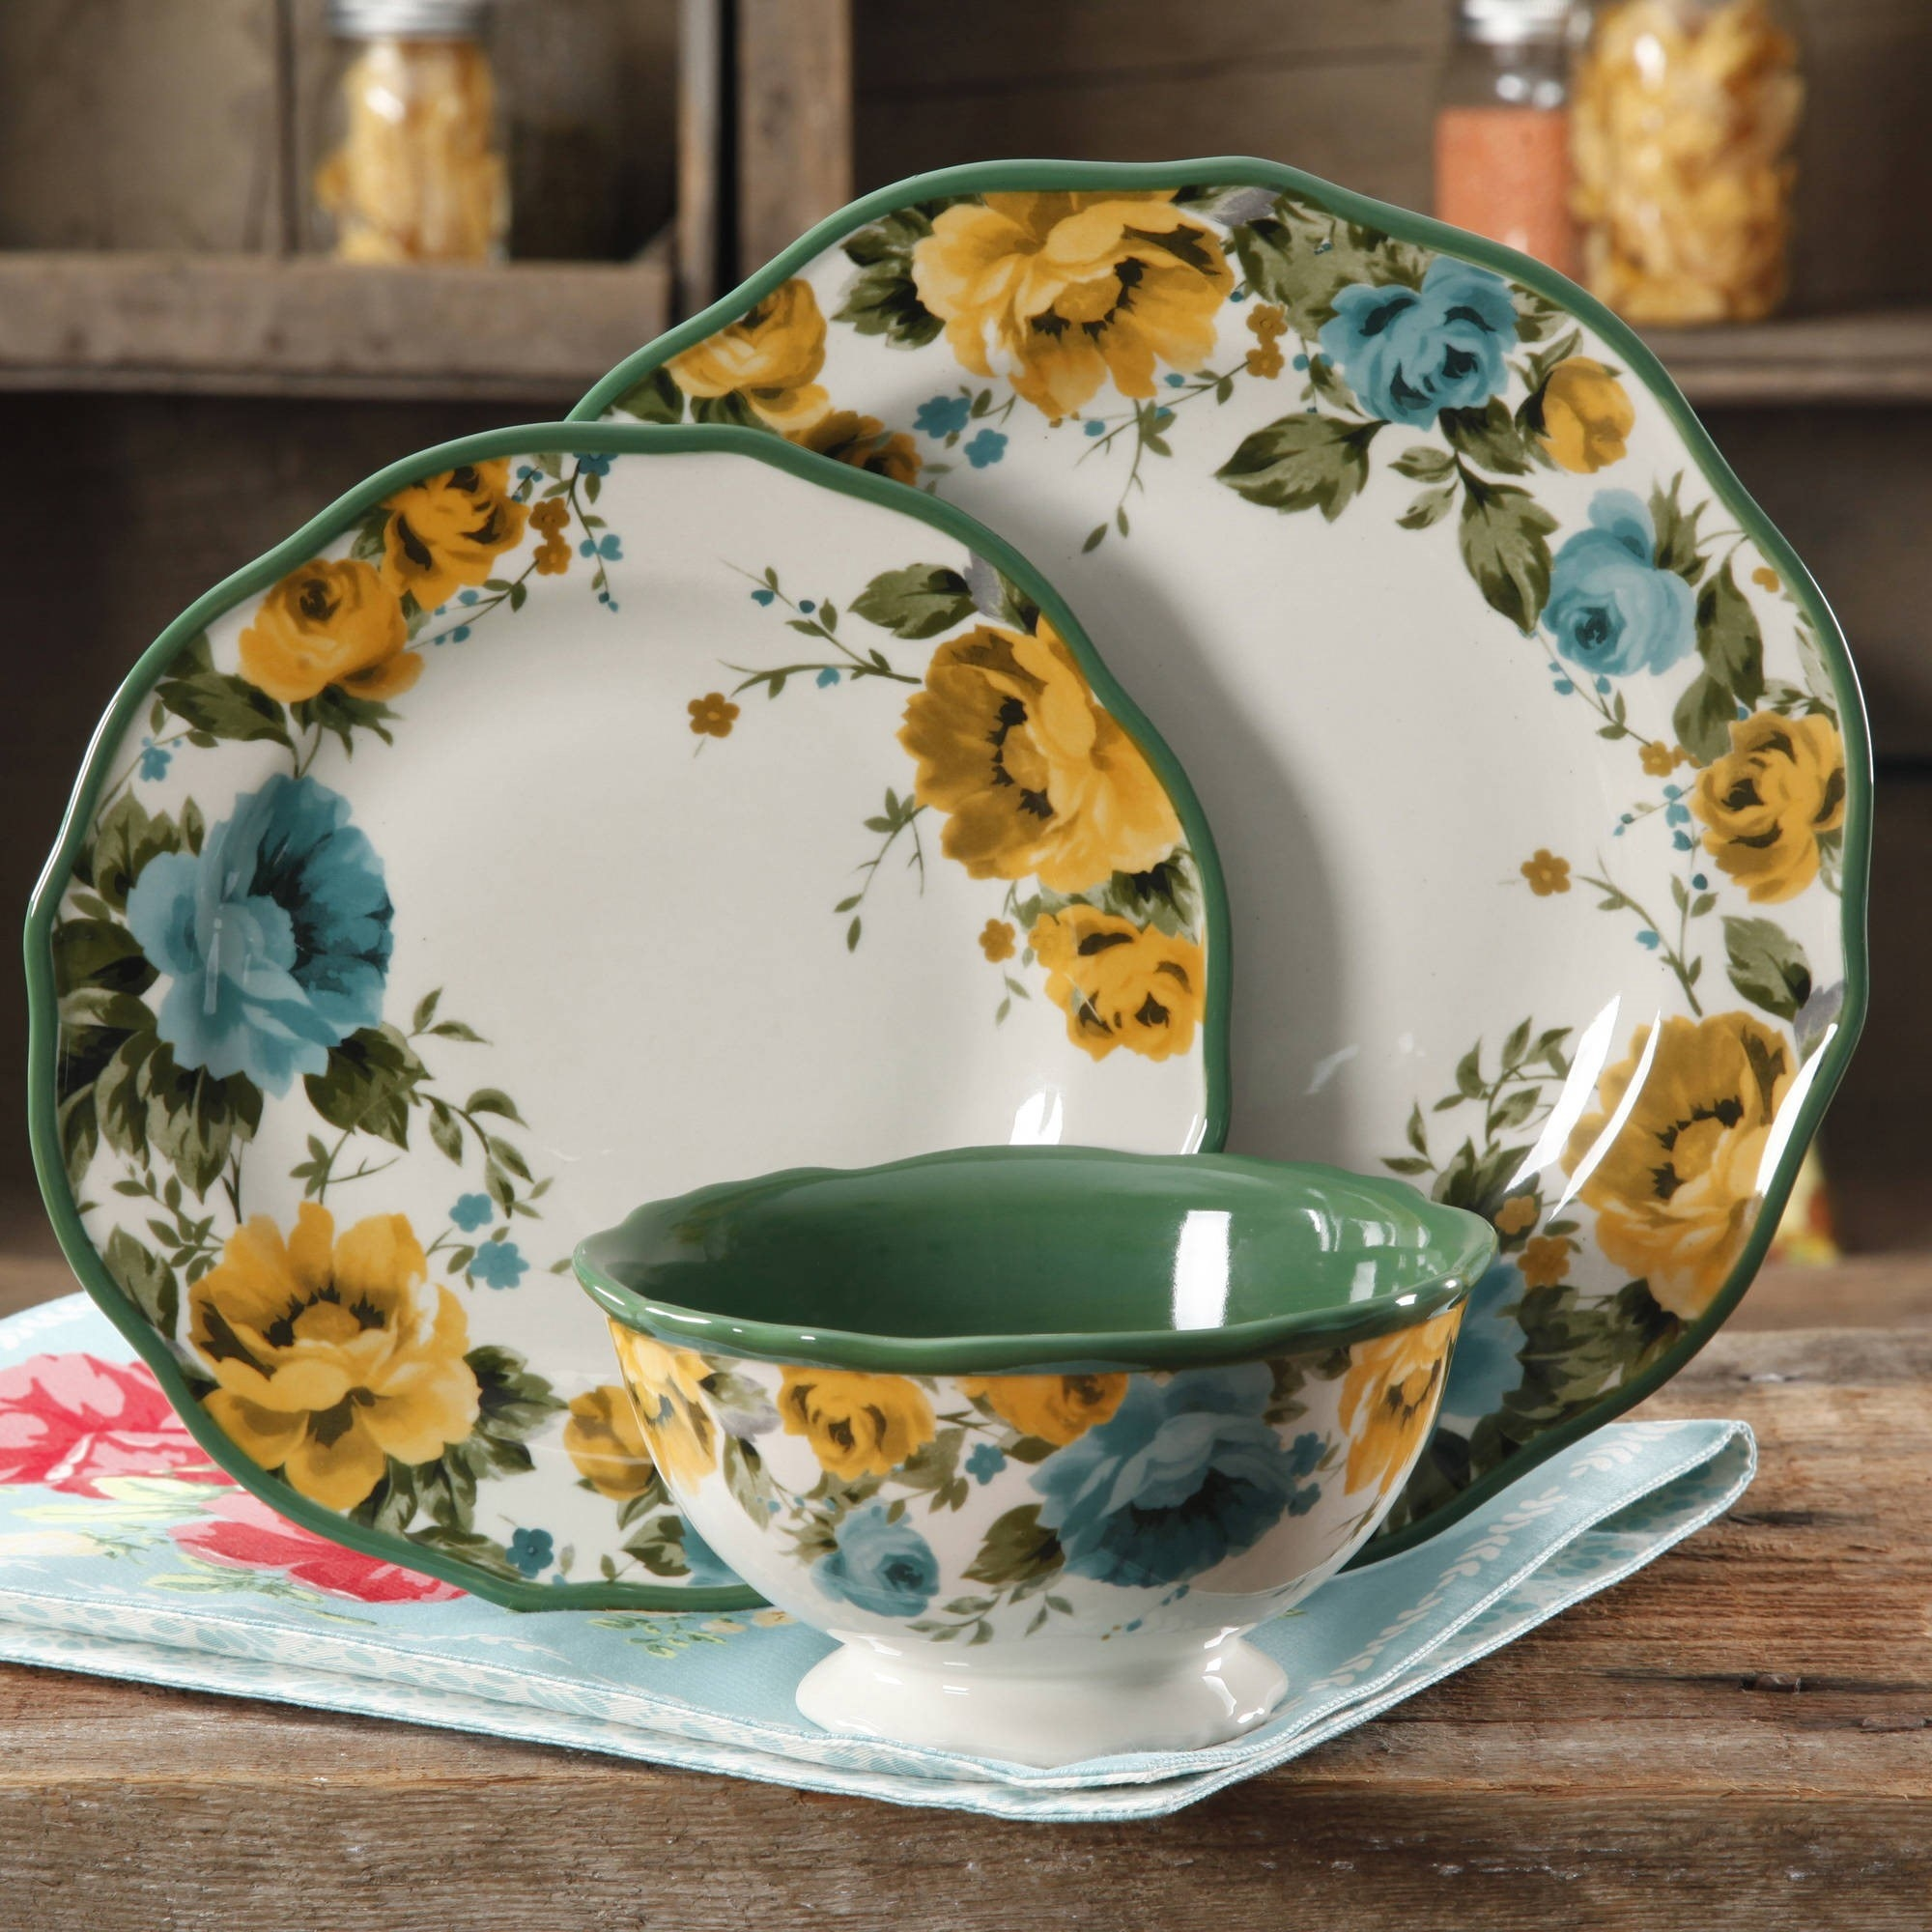 A set of evergreen and floral plates sitting on a counter